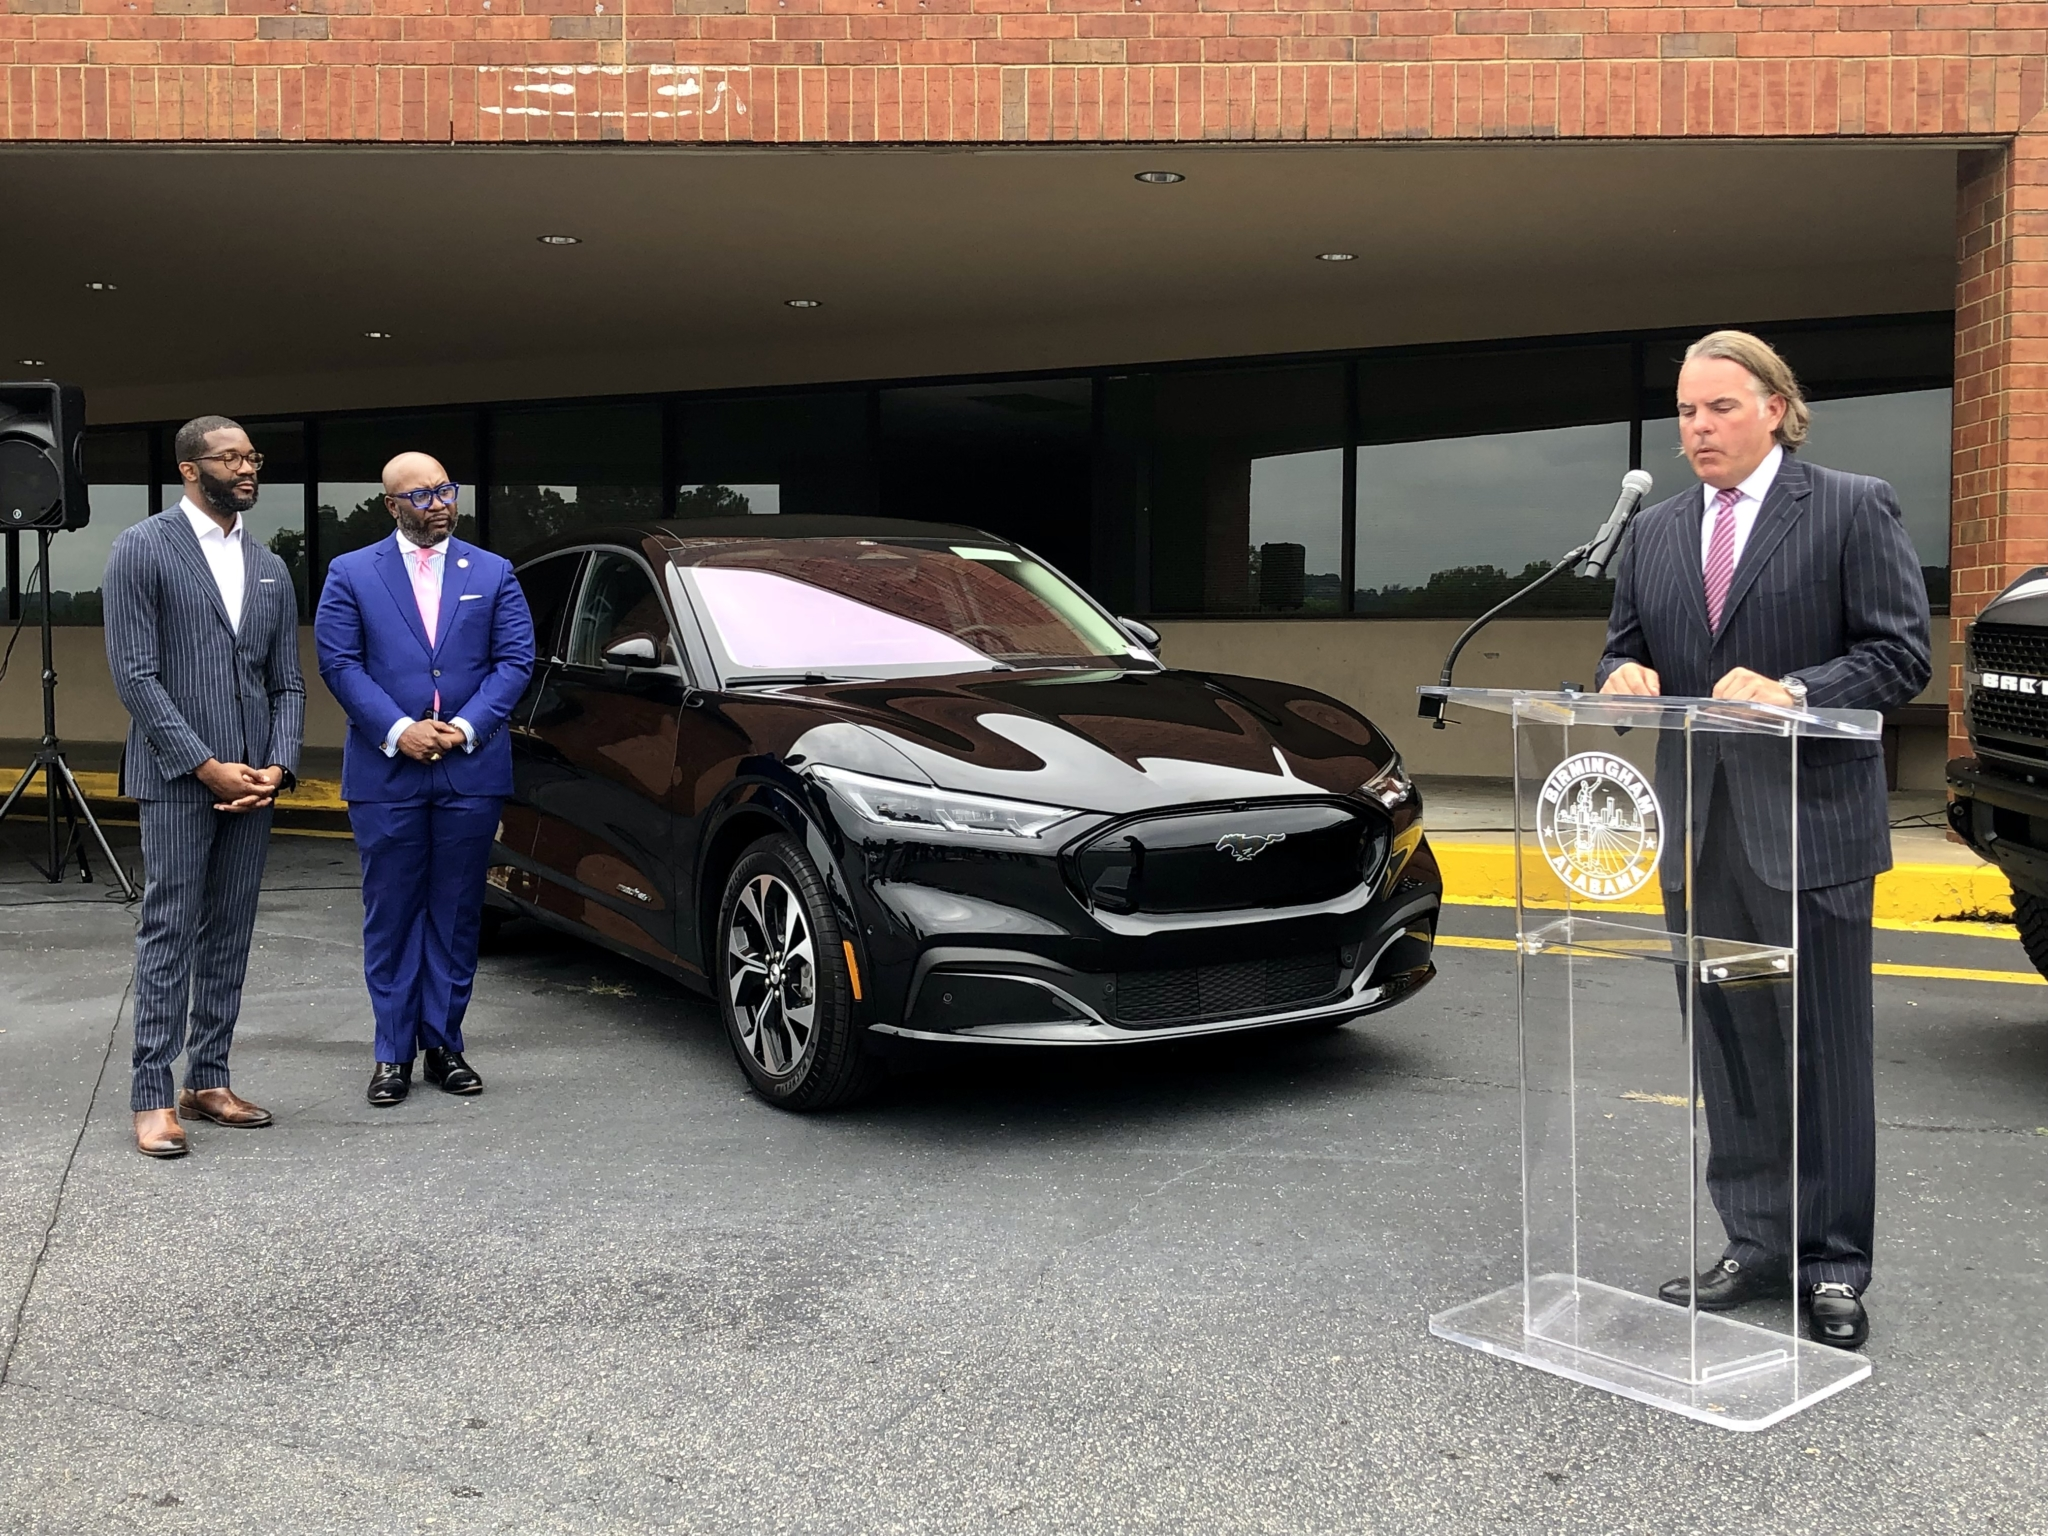 Stivers Ford to build auto showcase on the site of the abandoned Virginia College at the Palisades